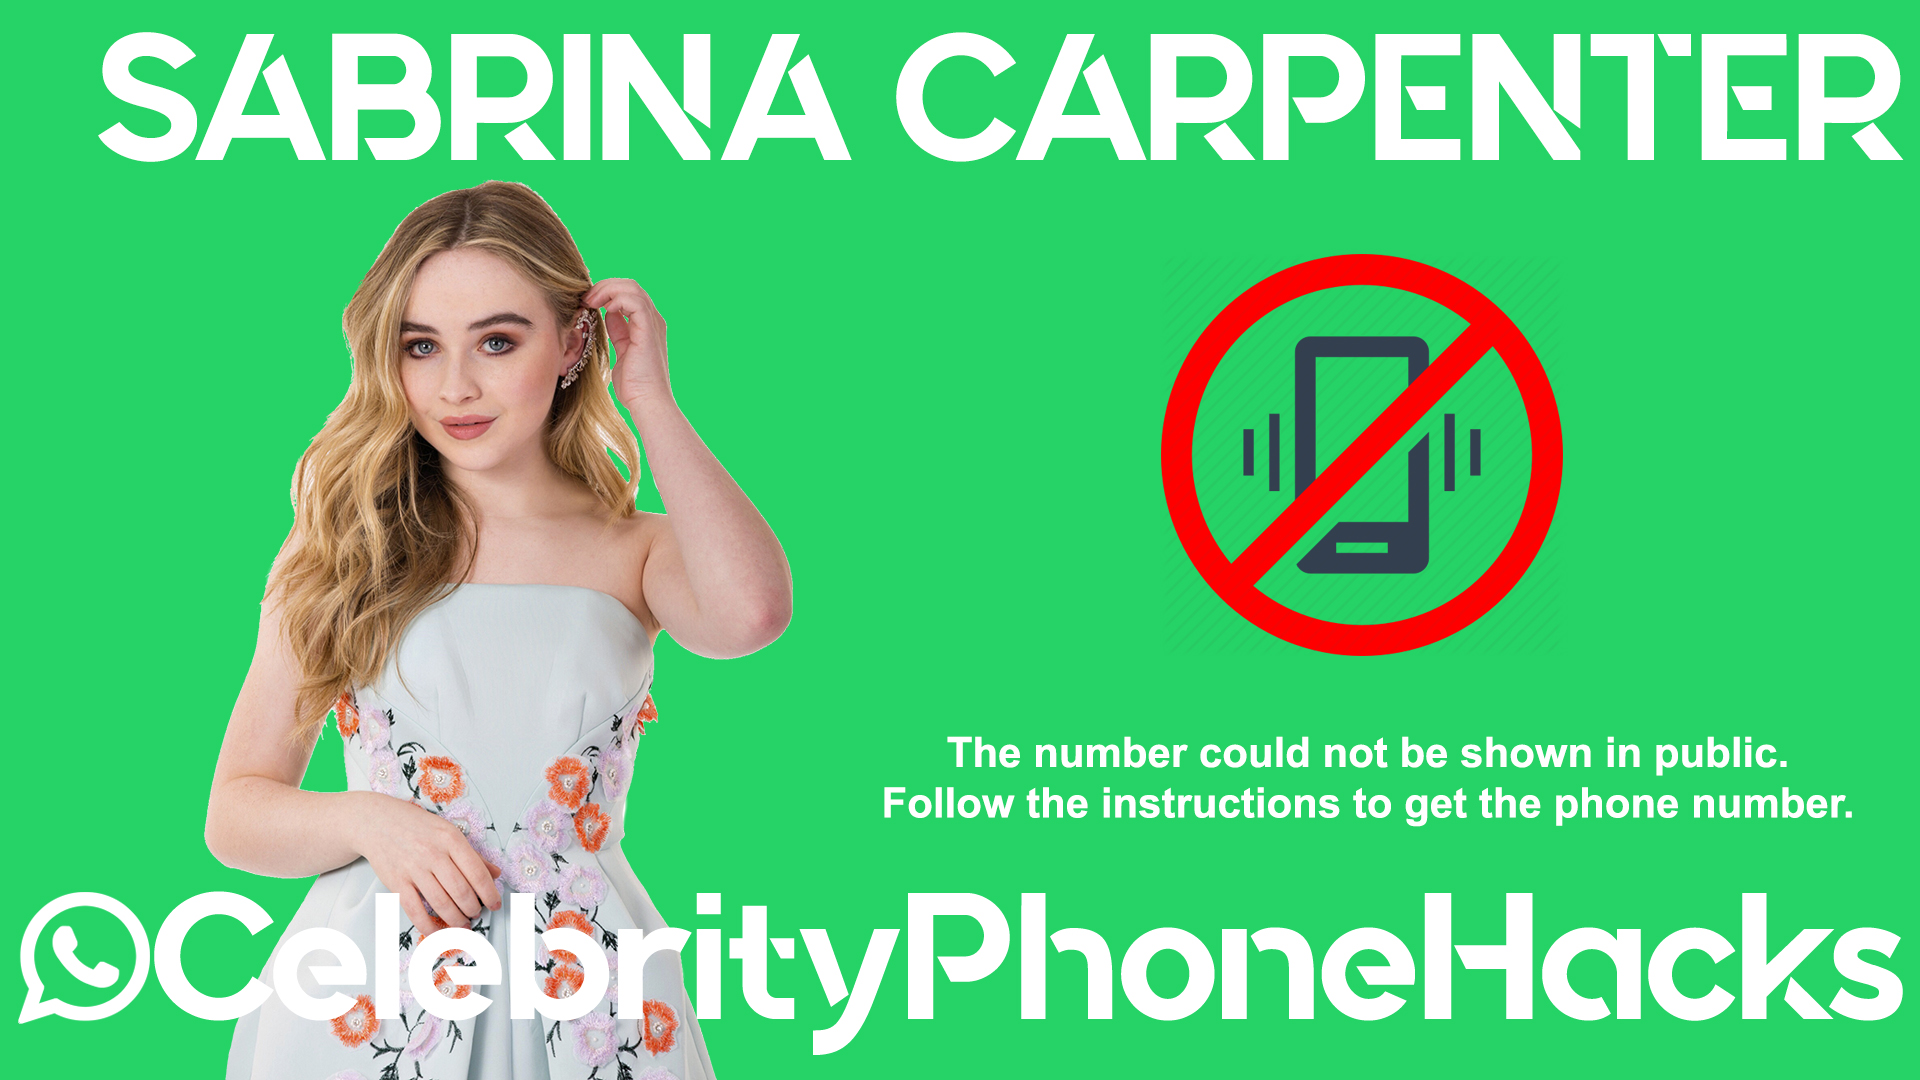 Sabrina Carpenter real phone number 2019 whatsapp hacked leaked